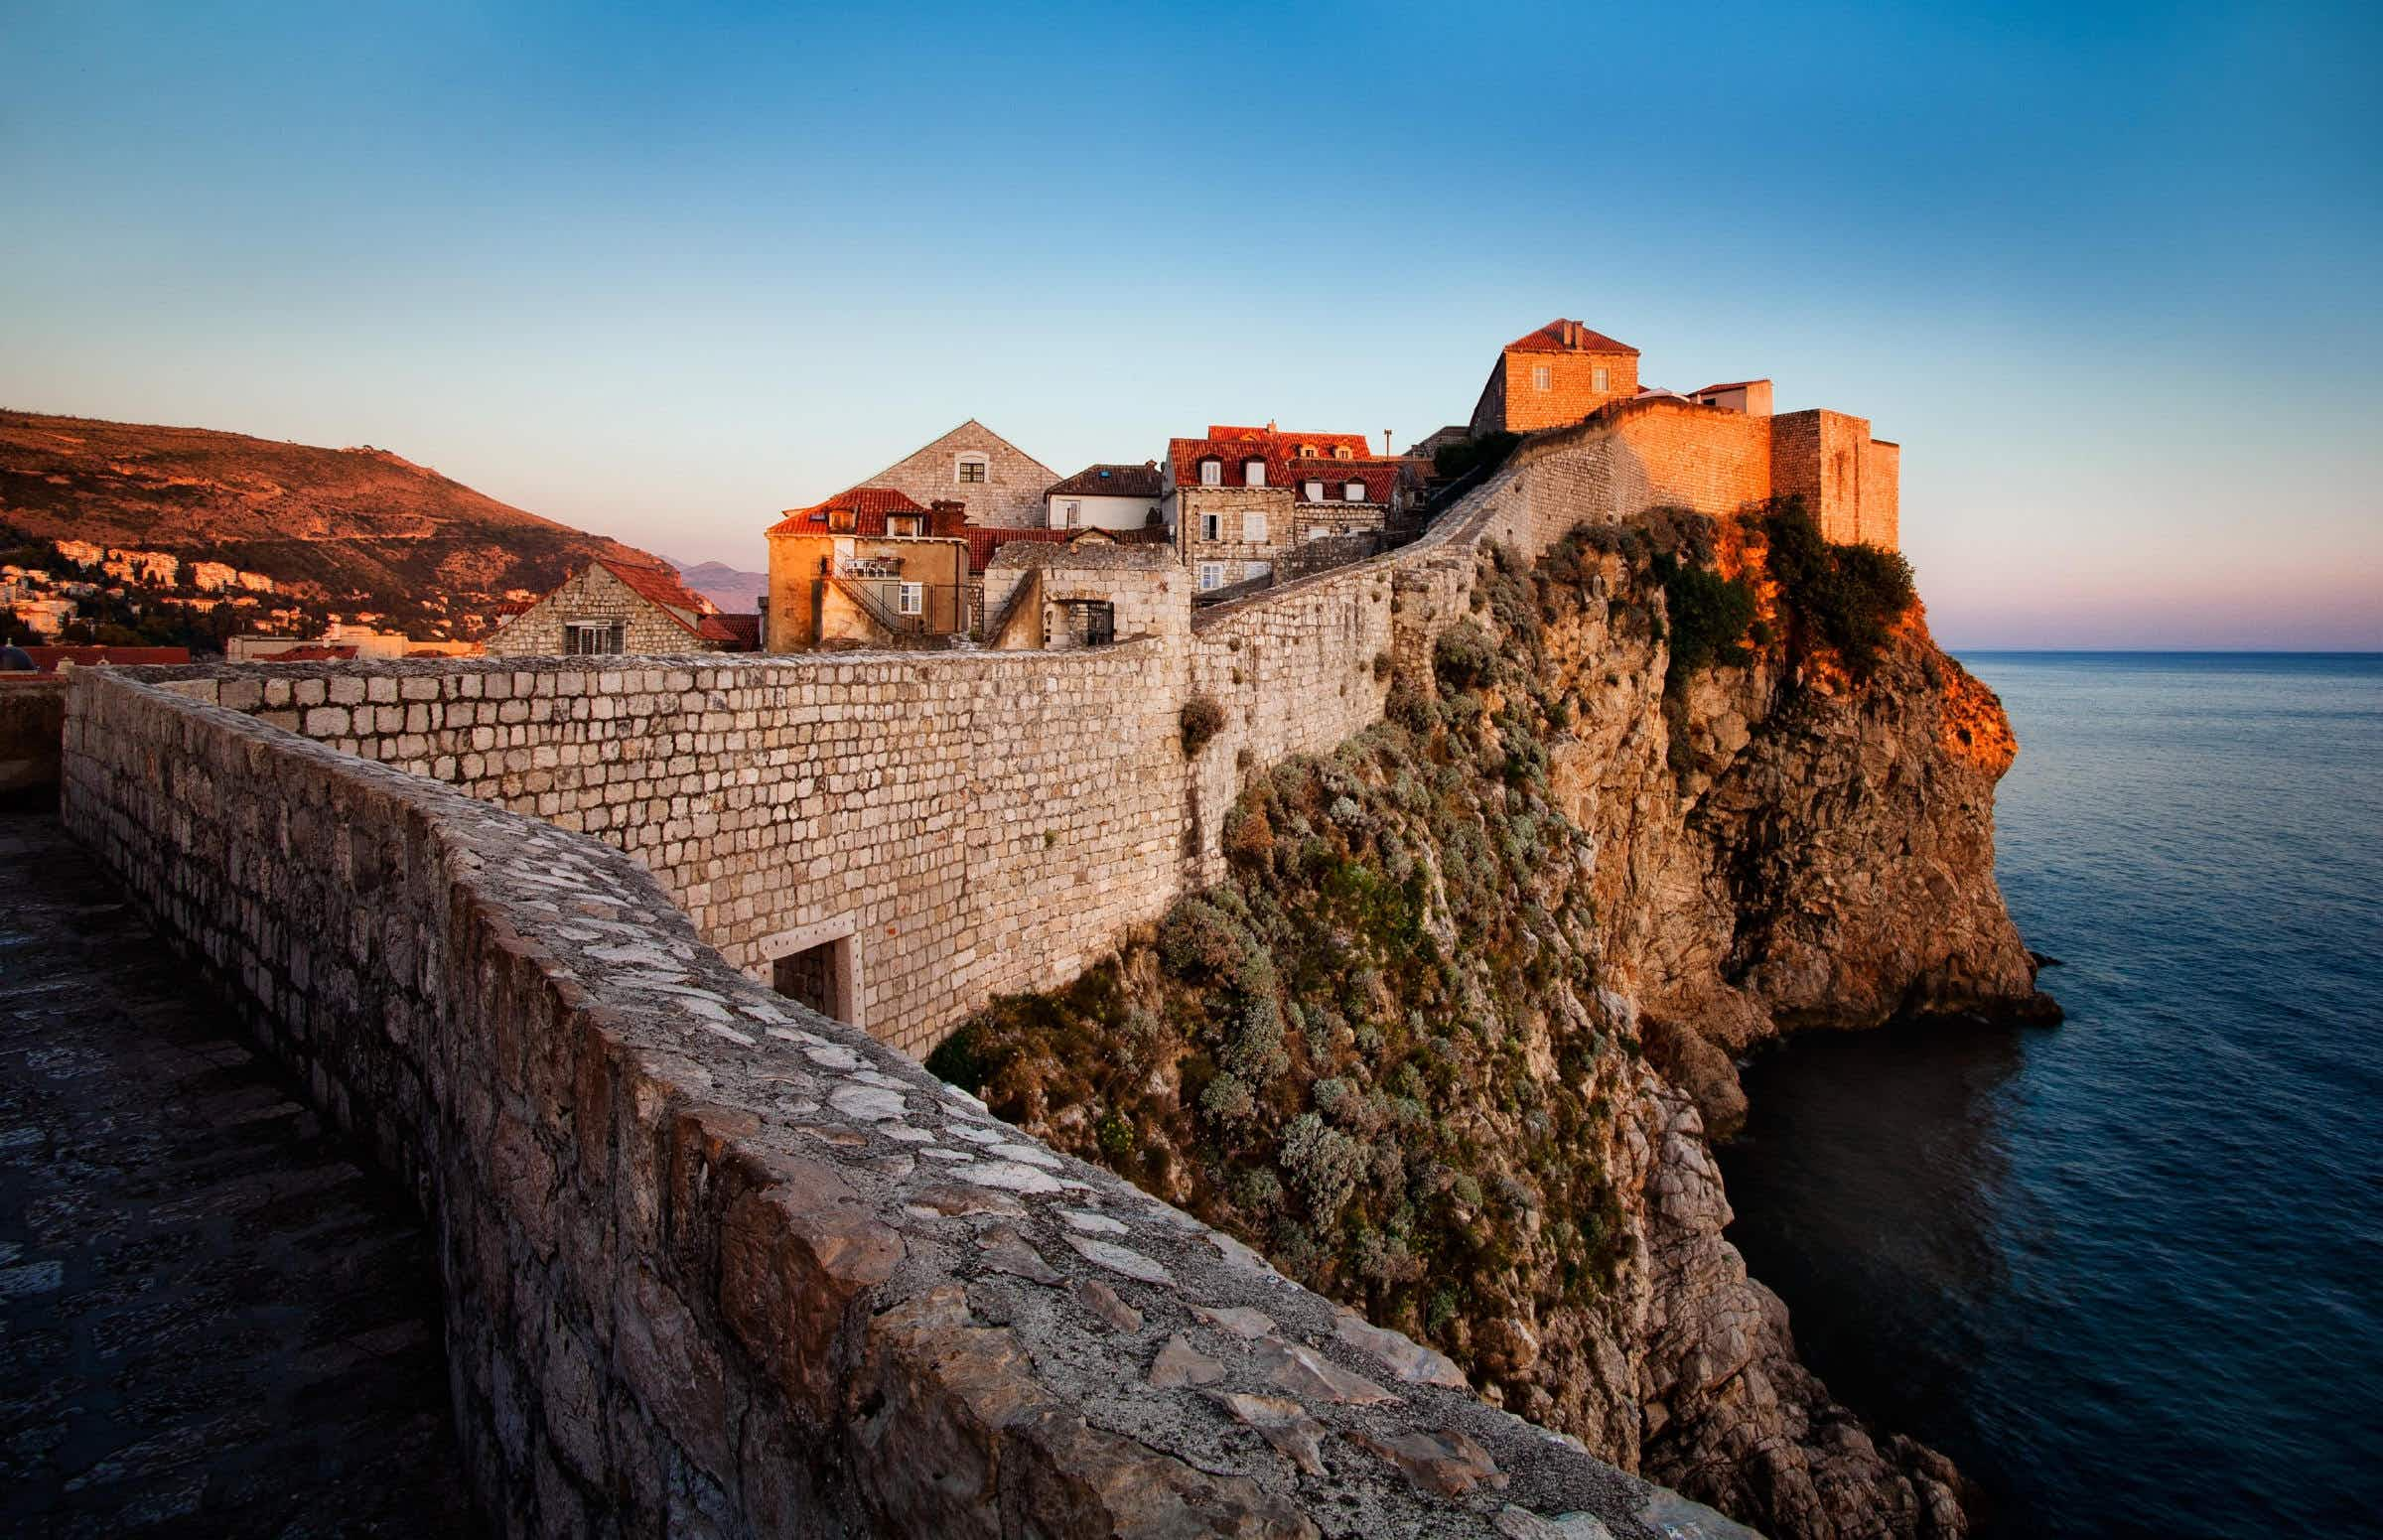 Croatia is significantly raising its tourism tax in 2019